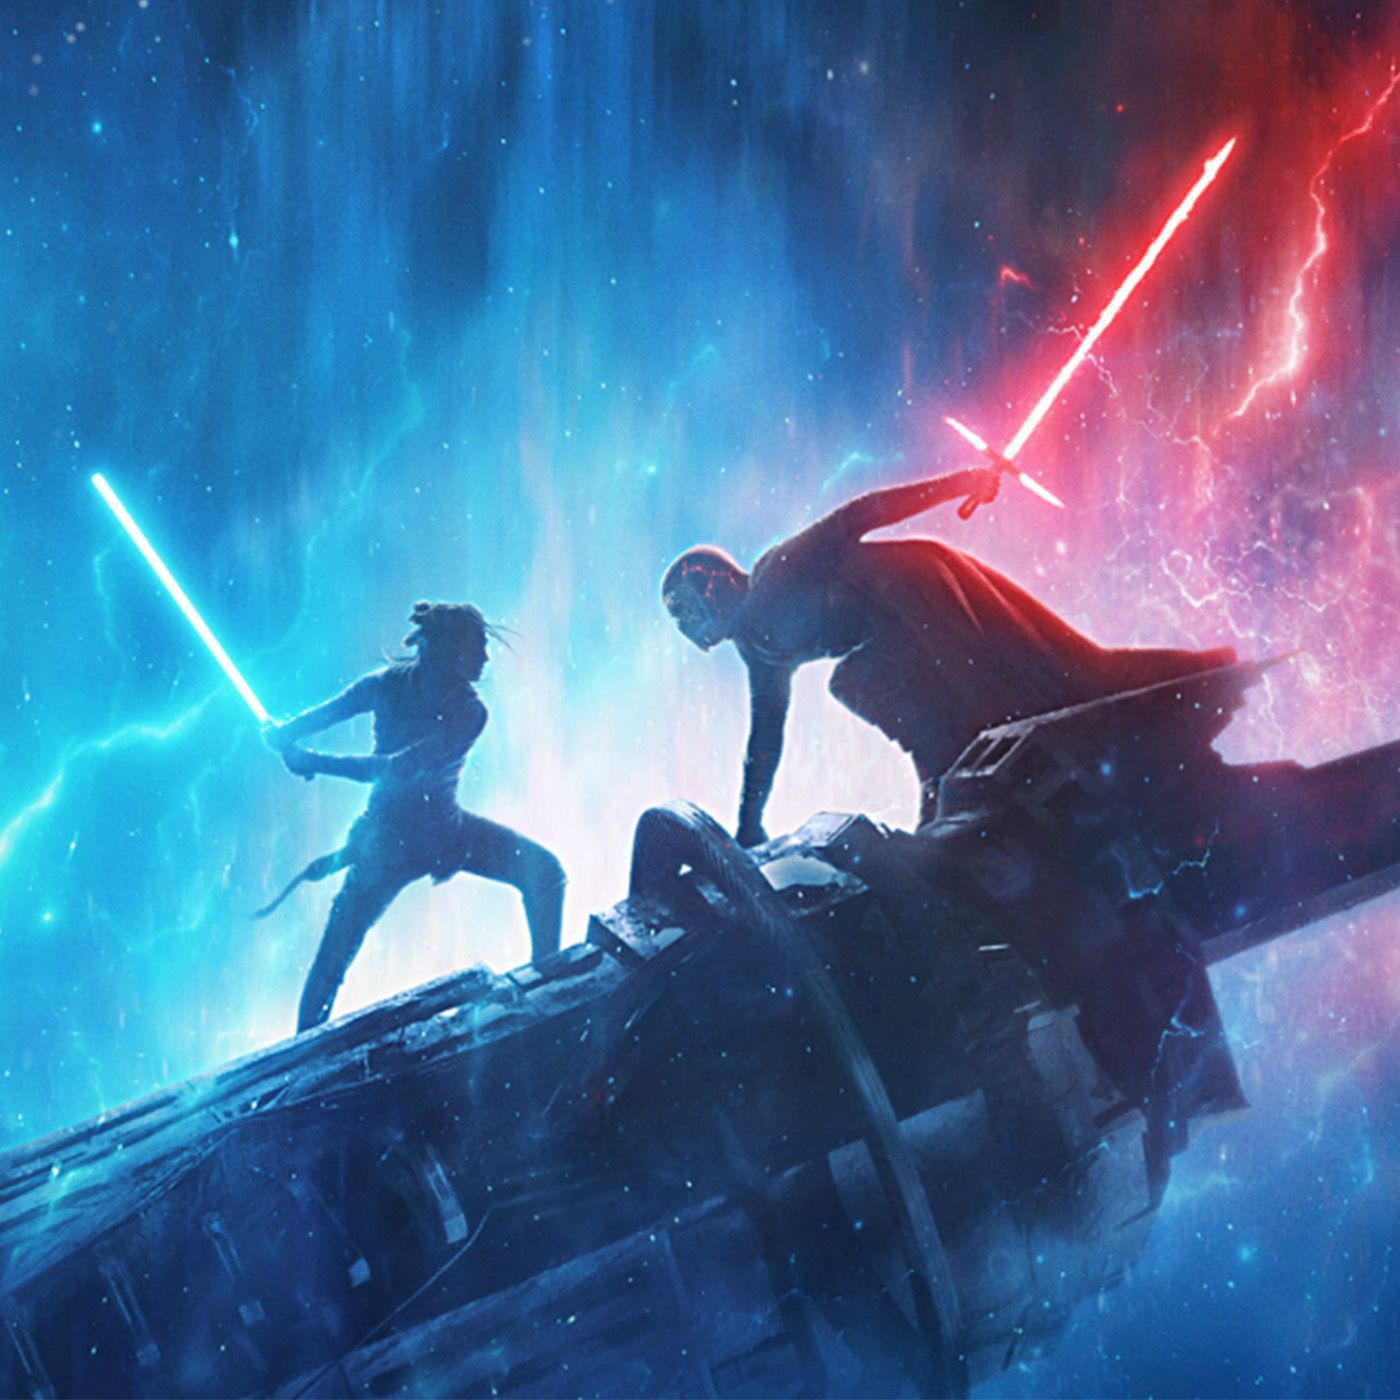 7. The Heroes Journey (Star Wars: The Rise of Skywalker)